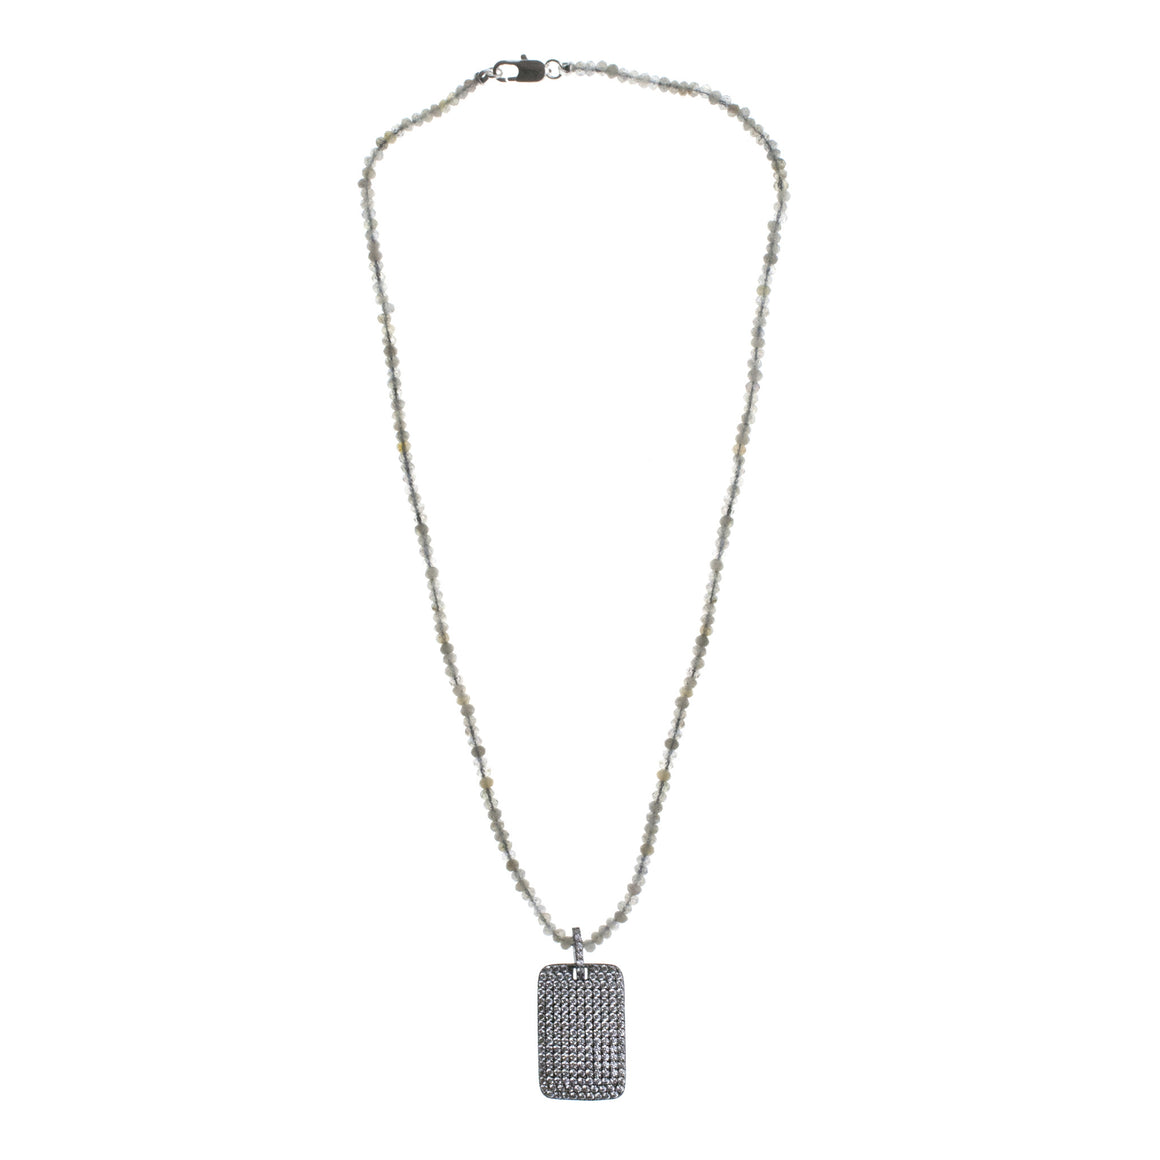 Pavé Dog Tag Bead Chain Necklace